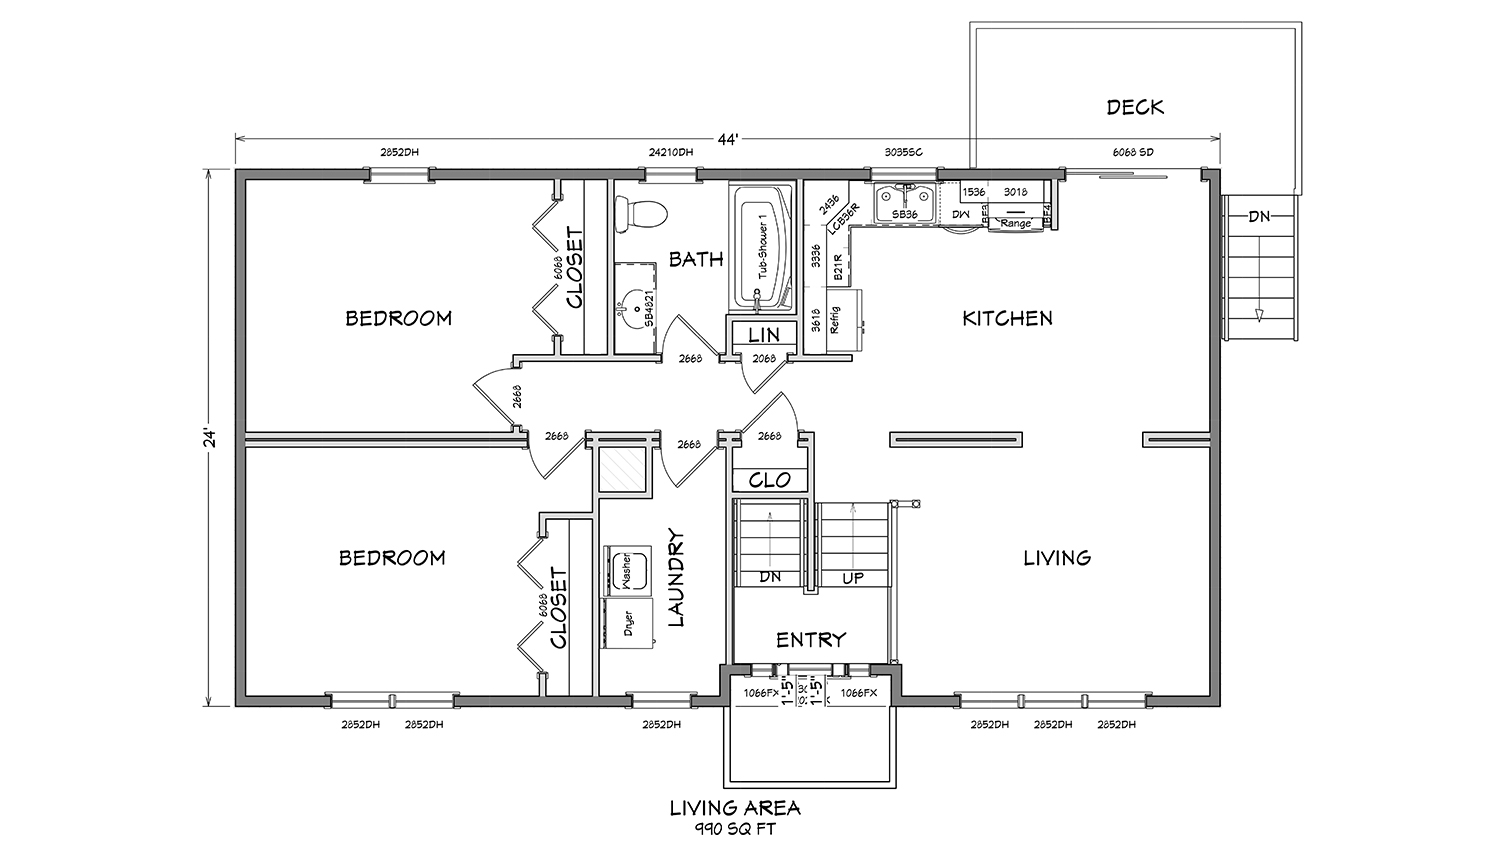 Cape Cod Modular Floor Plans Bl001 Cape Cod Modular Home